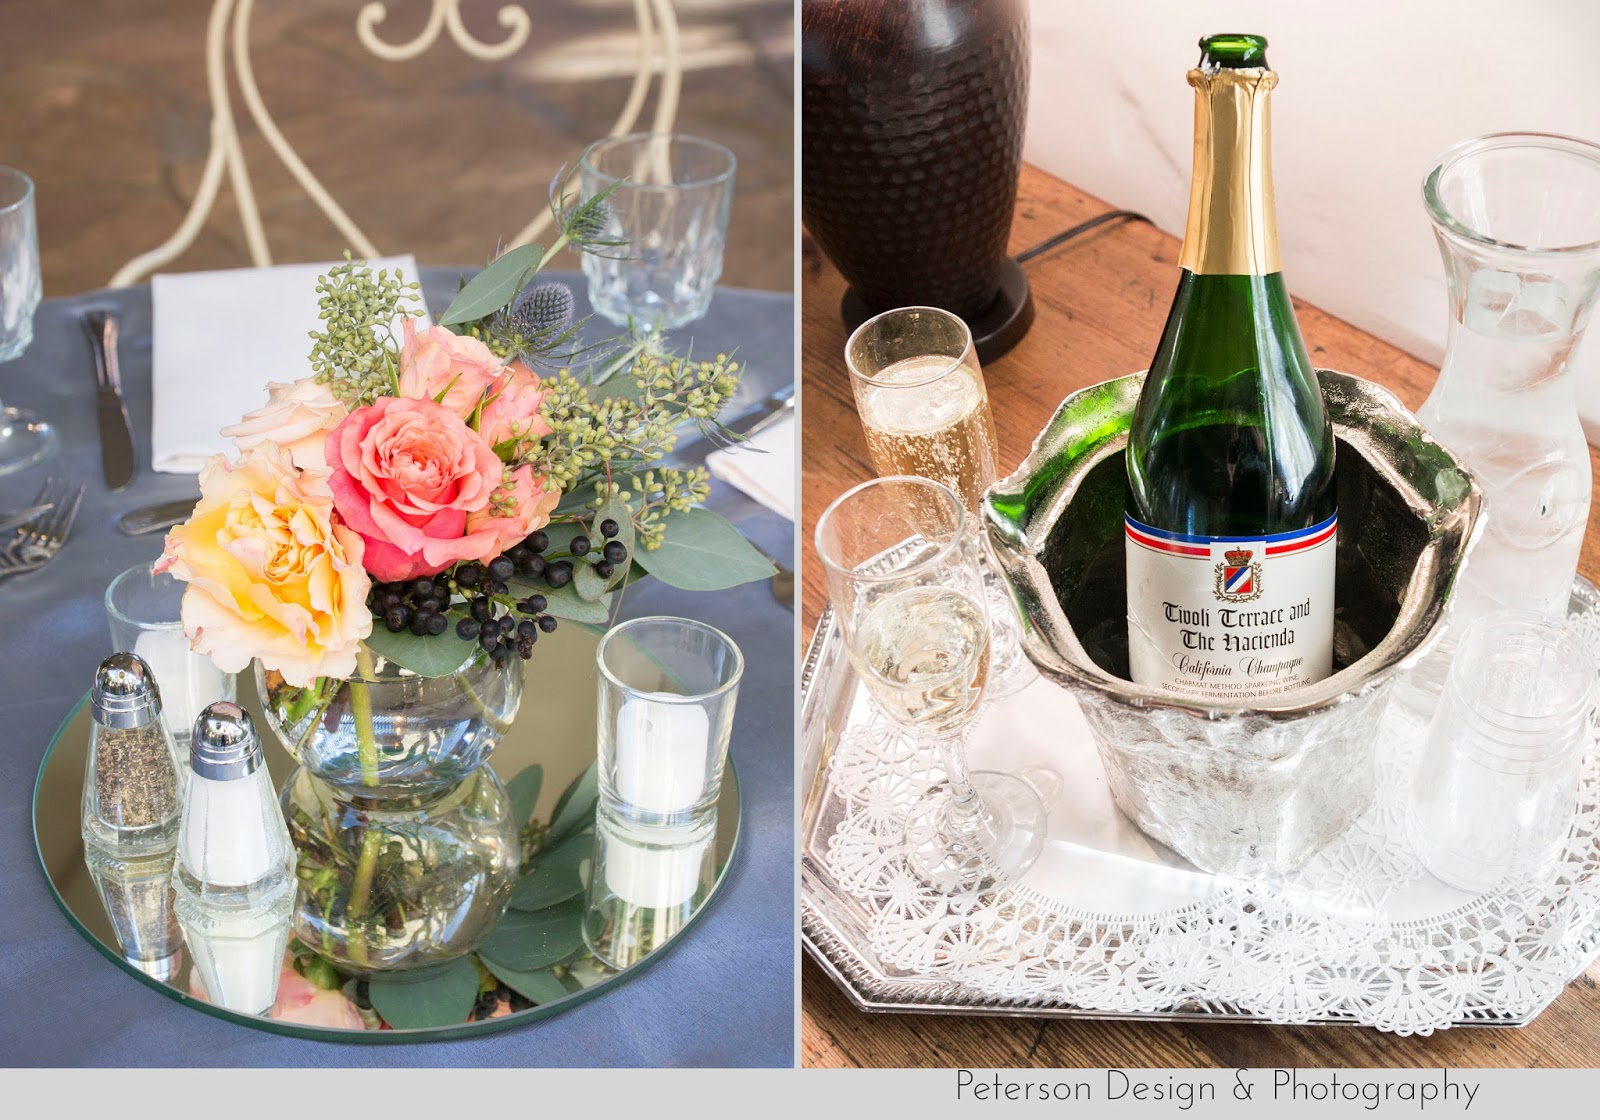 Centerpiece and Champagne at The Hacienda Weddings Santa Ana